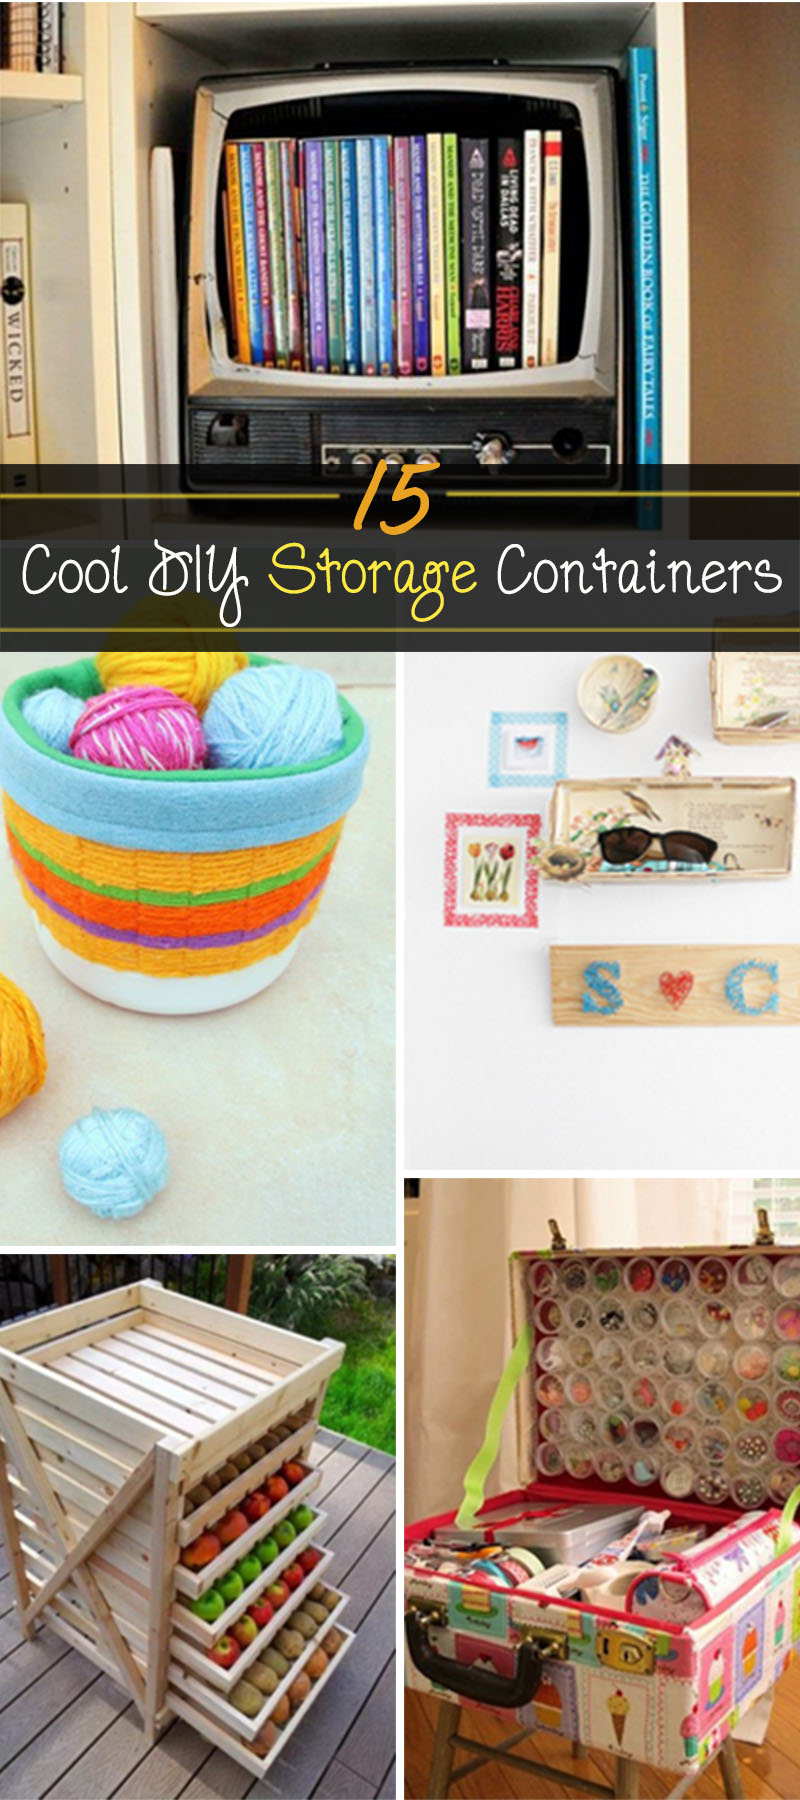 15 Cool Diy Storage Containers Hative